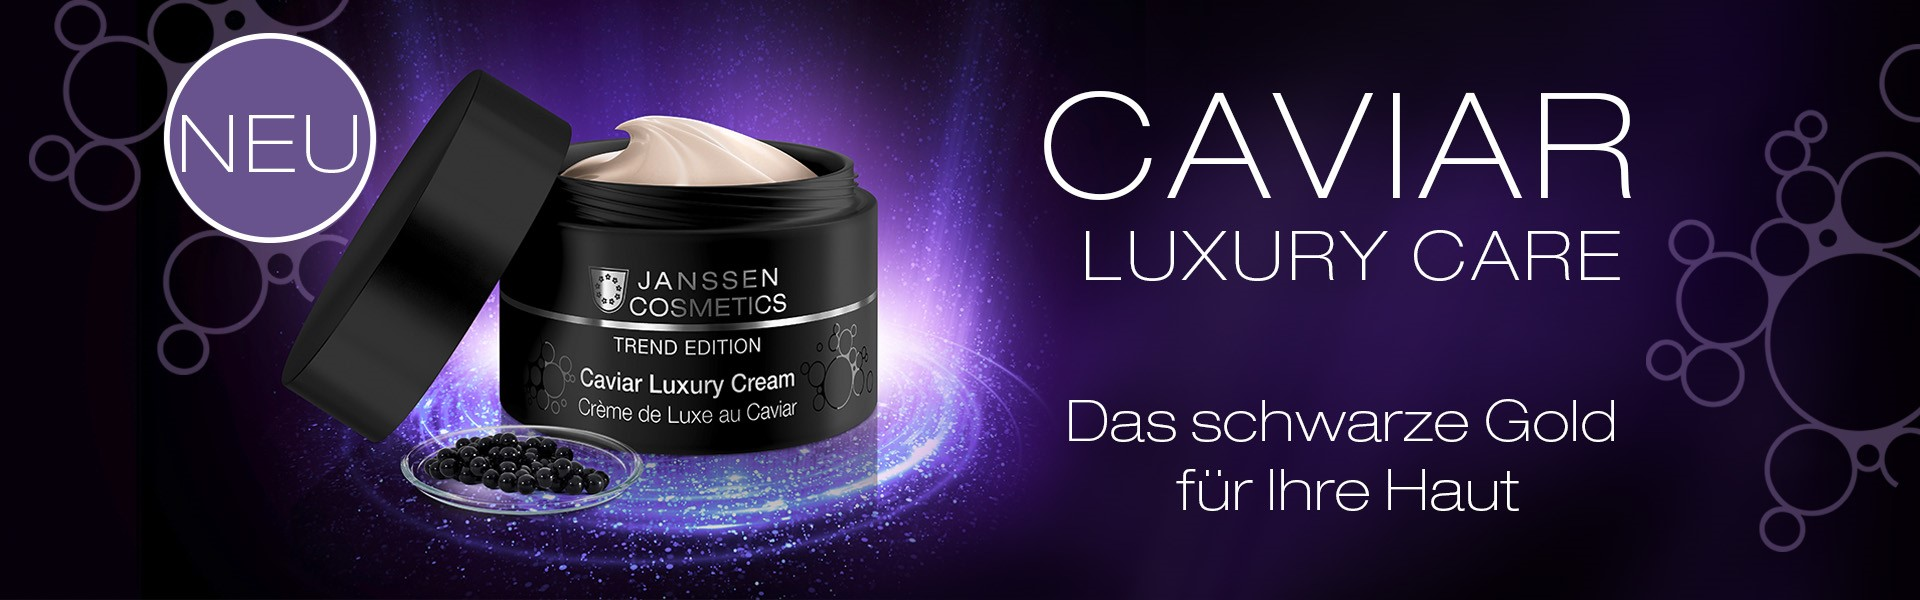 Caviar Luxury Cream